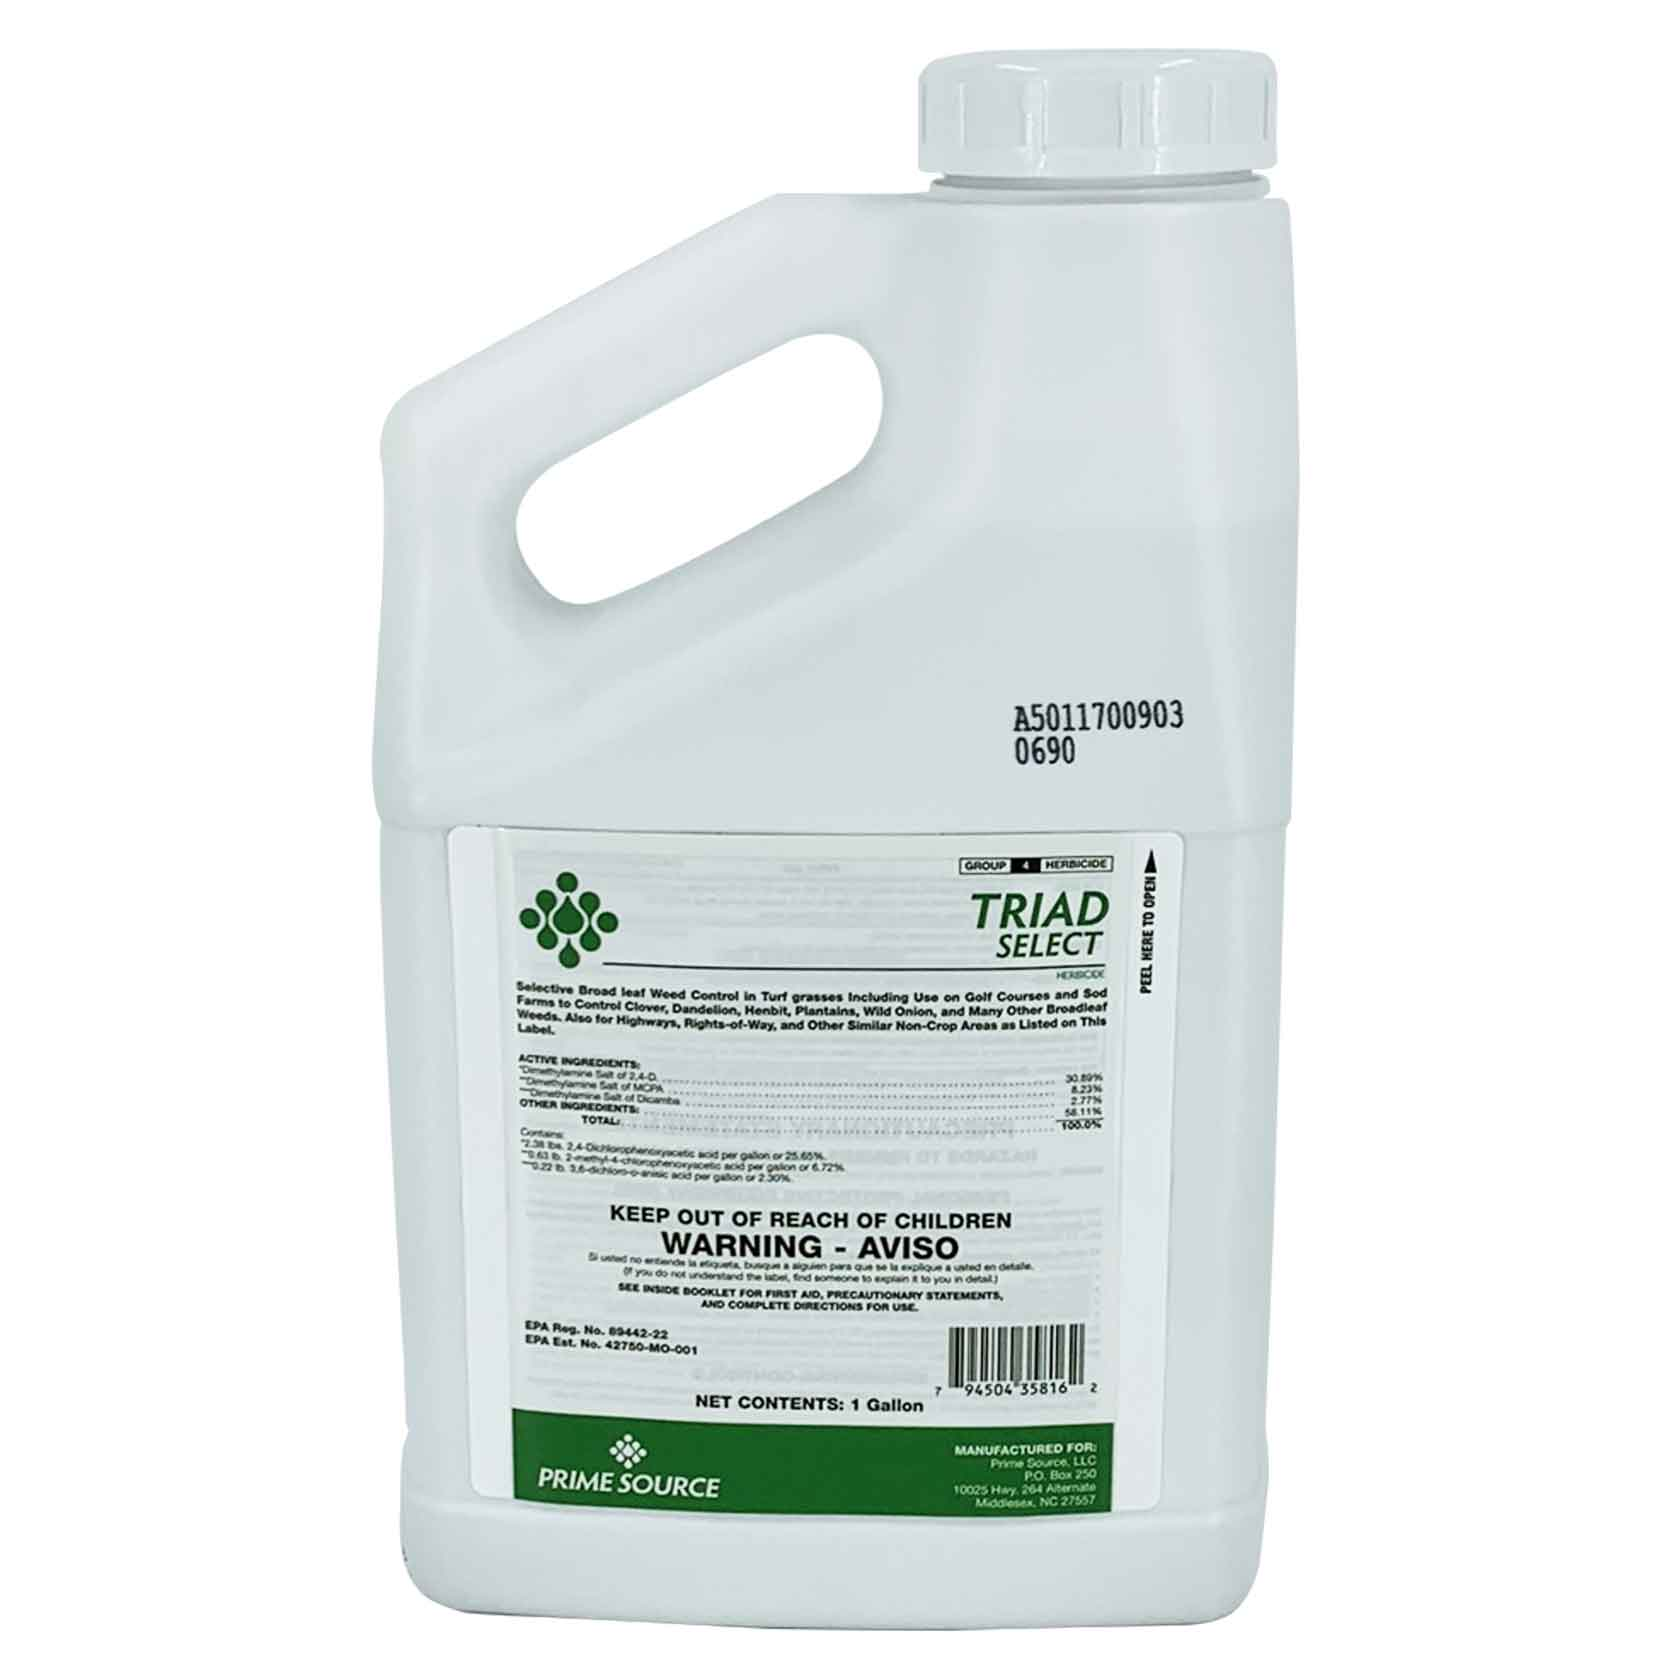 Broadleaf Weed Control - Triad Select™ 3-Way Herbicide